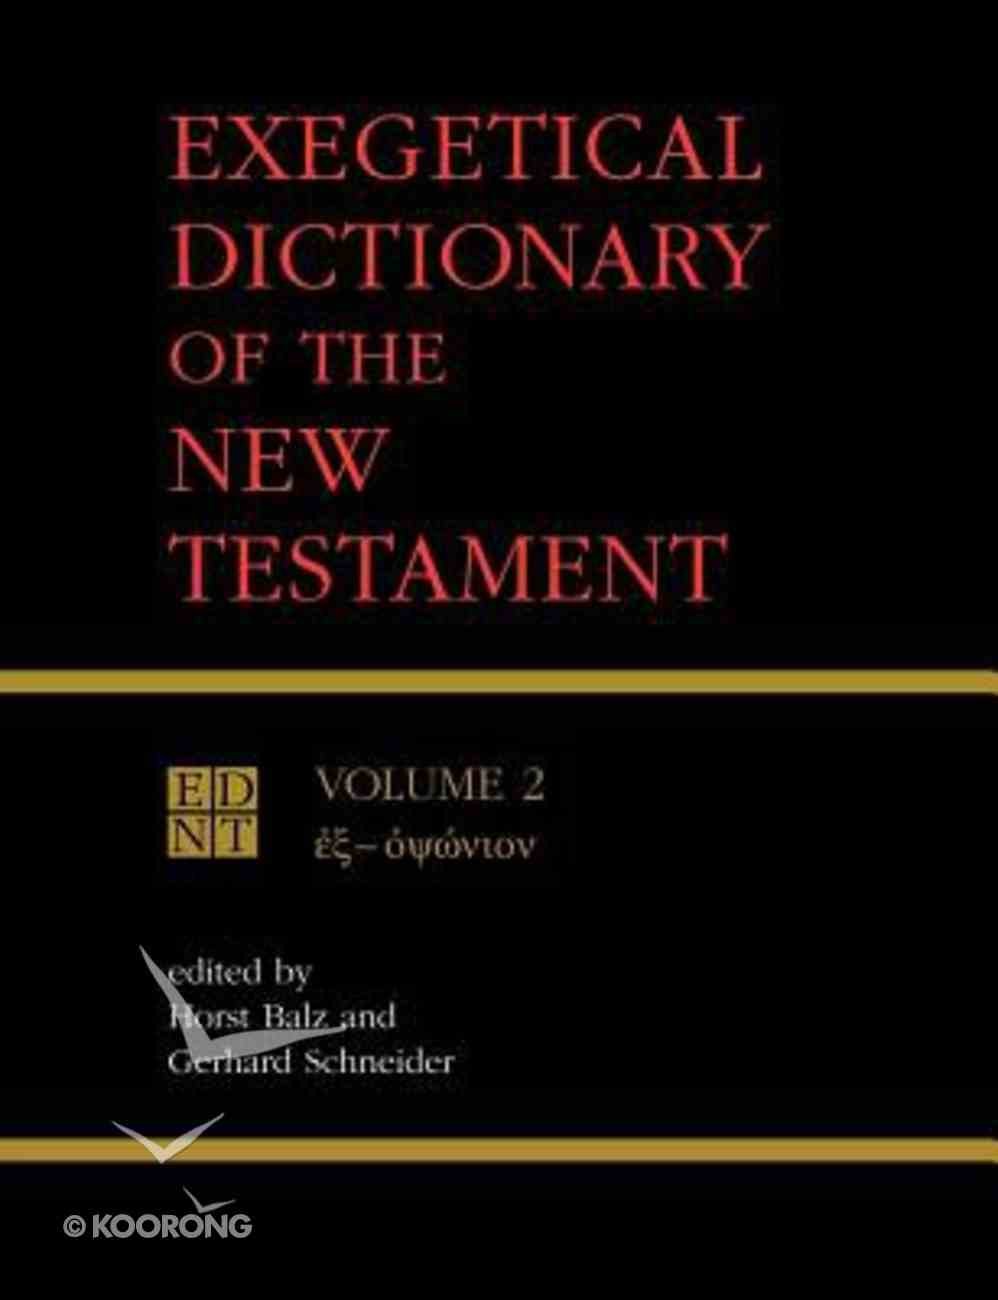 Exegetical Dictionary of the New Testament (Volume 2) (#02 in Exegetical Dictionary Of The New Testament Series) Paperback